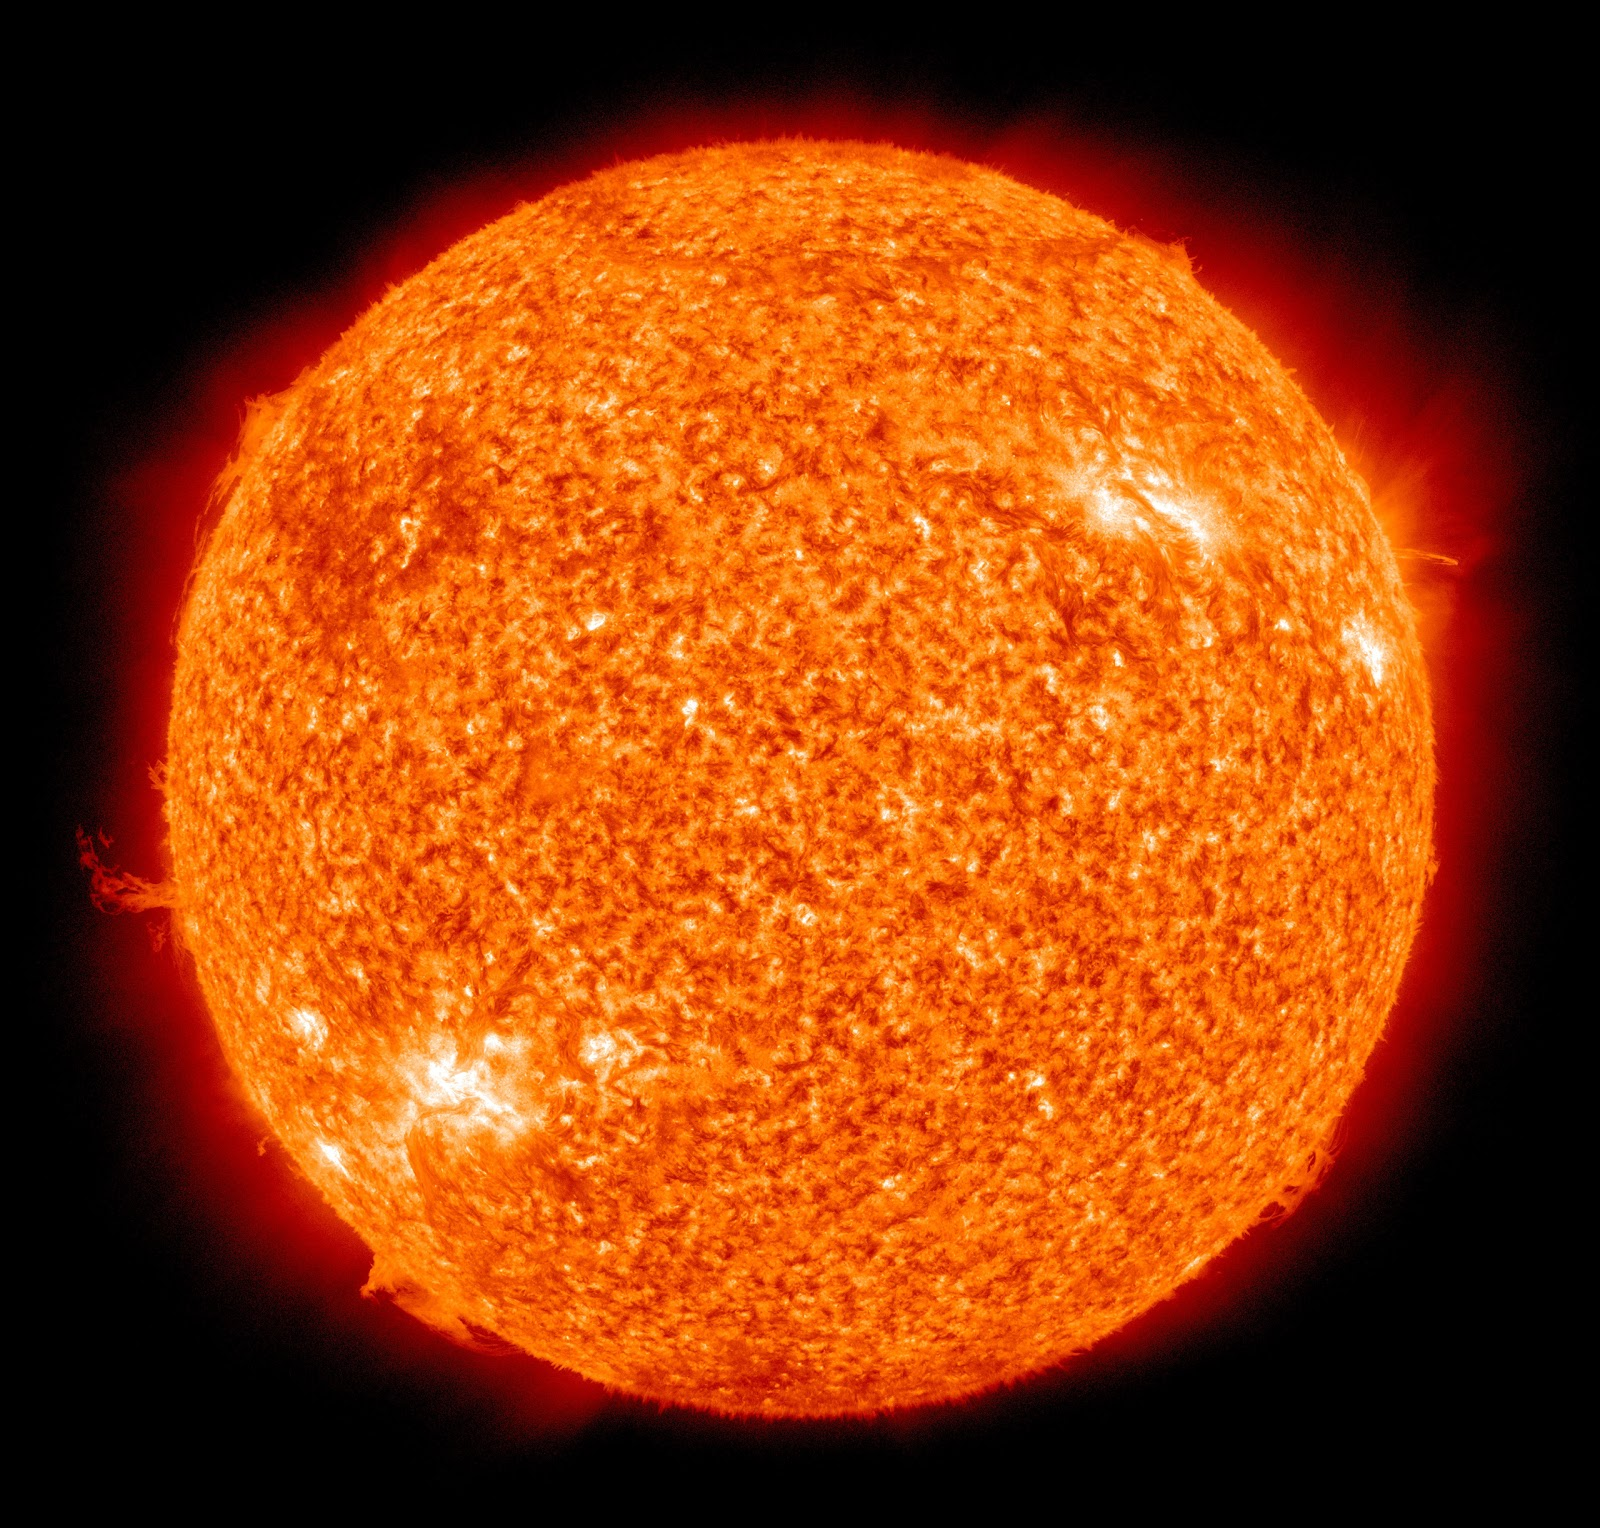 Sun From Space: Astronomy, Space Travel, And Our Coming Hurdles: Sol: Our